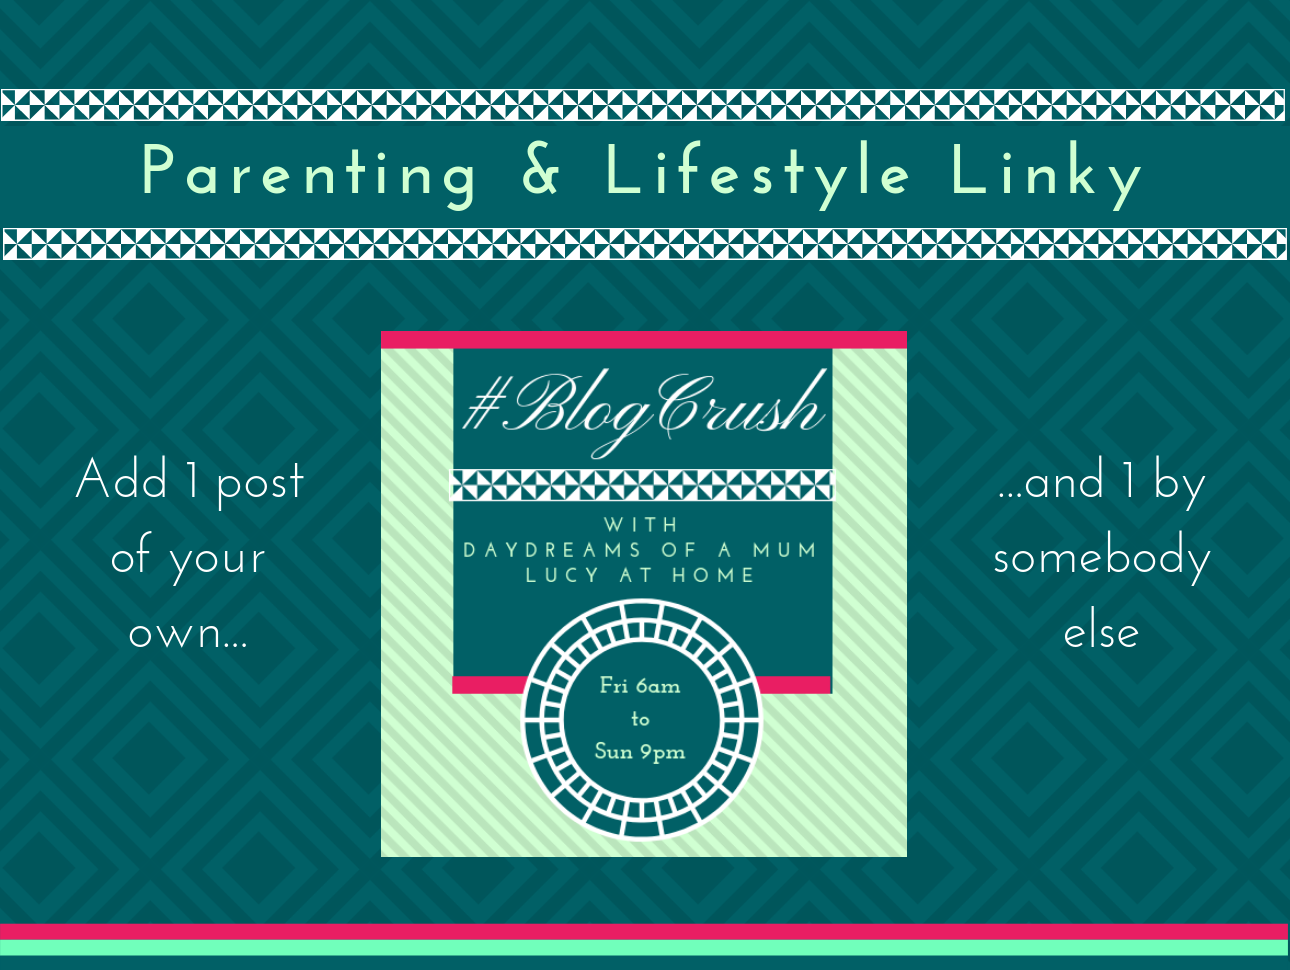 BlogCrush Linky Concept - BlogCrush Week 92